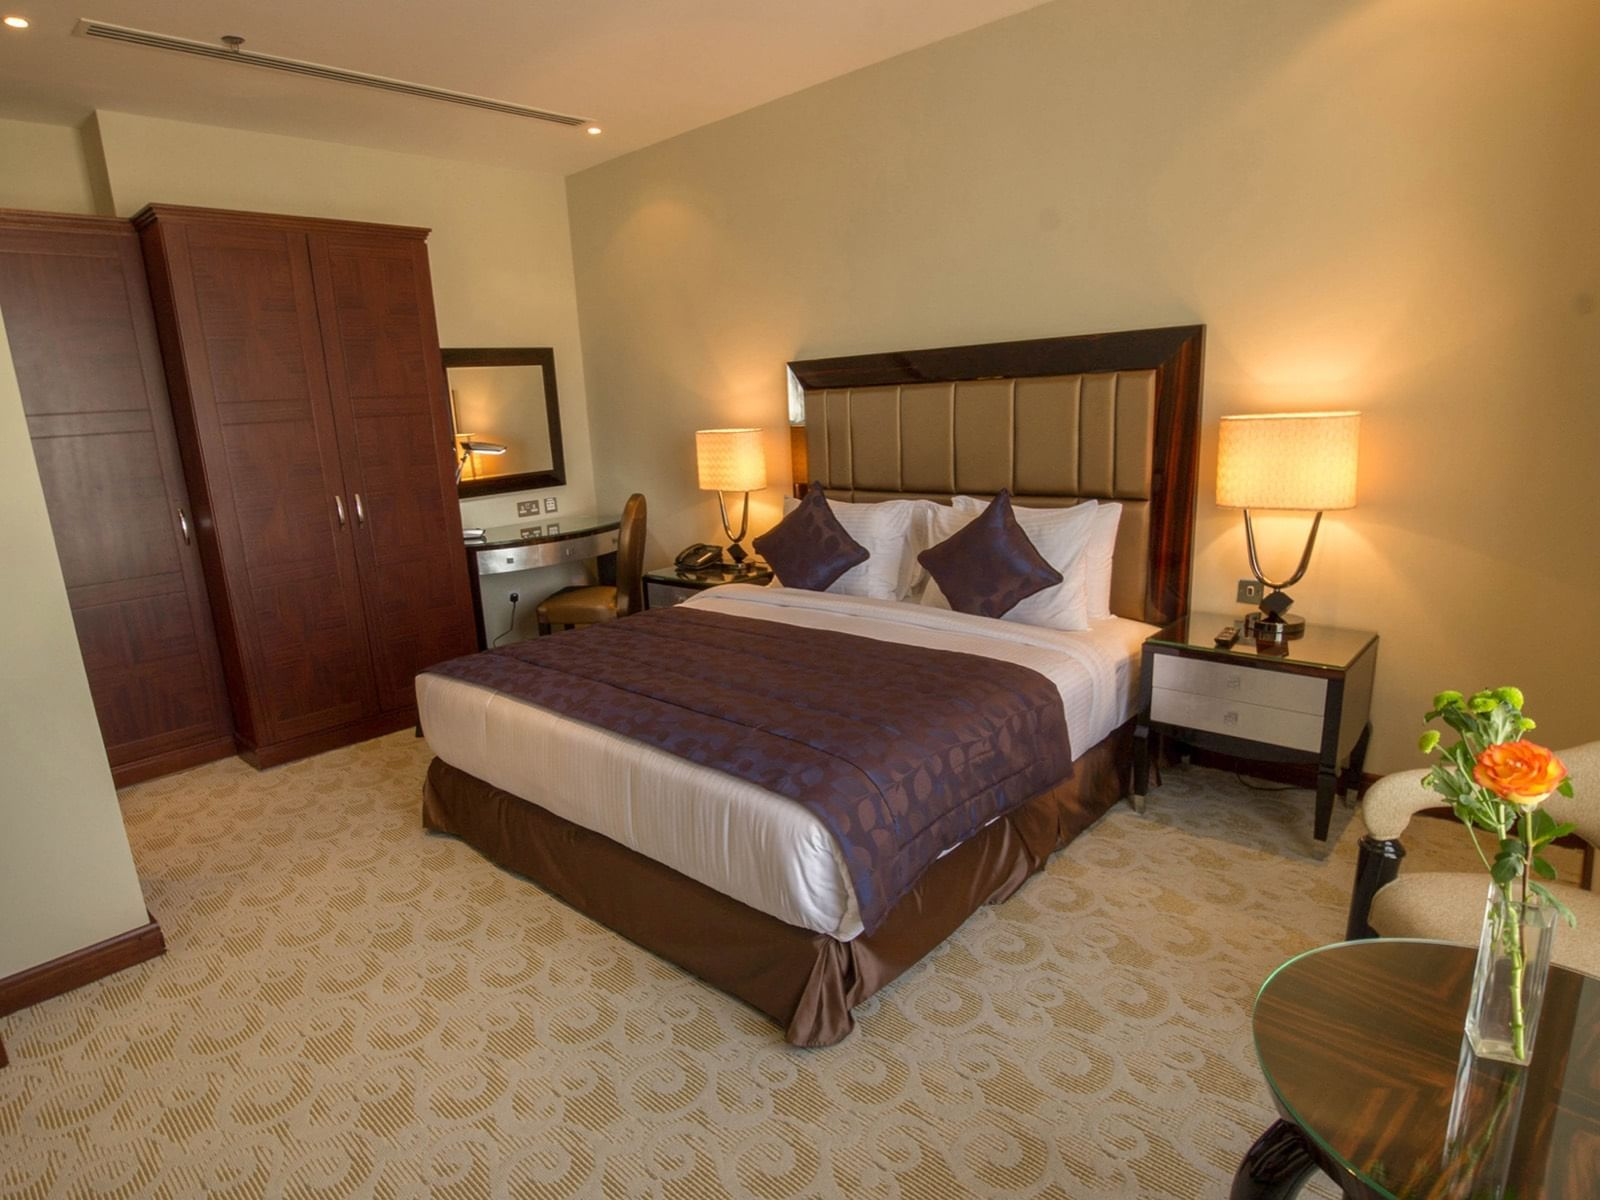 Executive Suite at Strato Hotel by Warwick